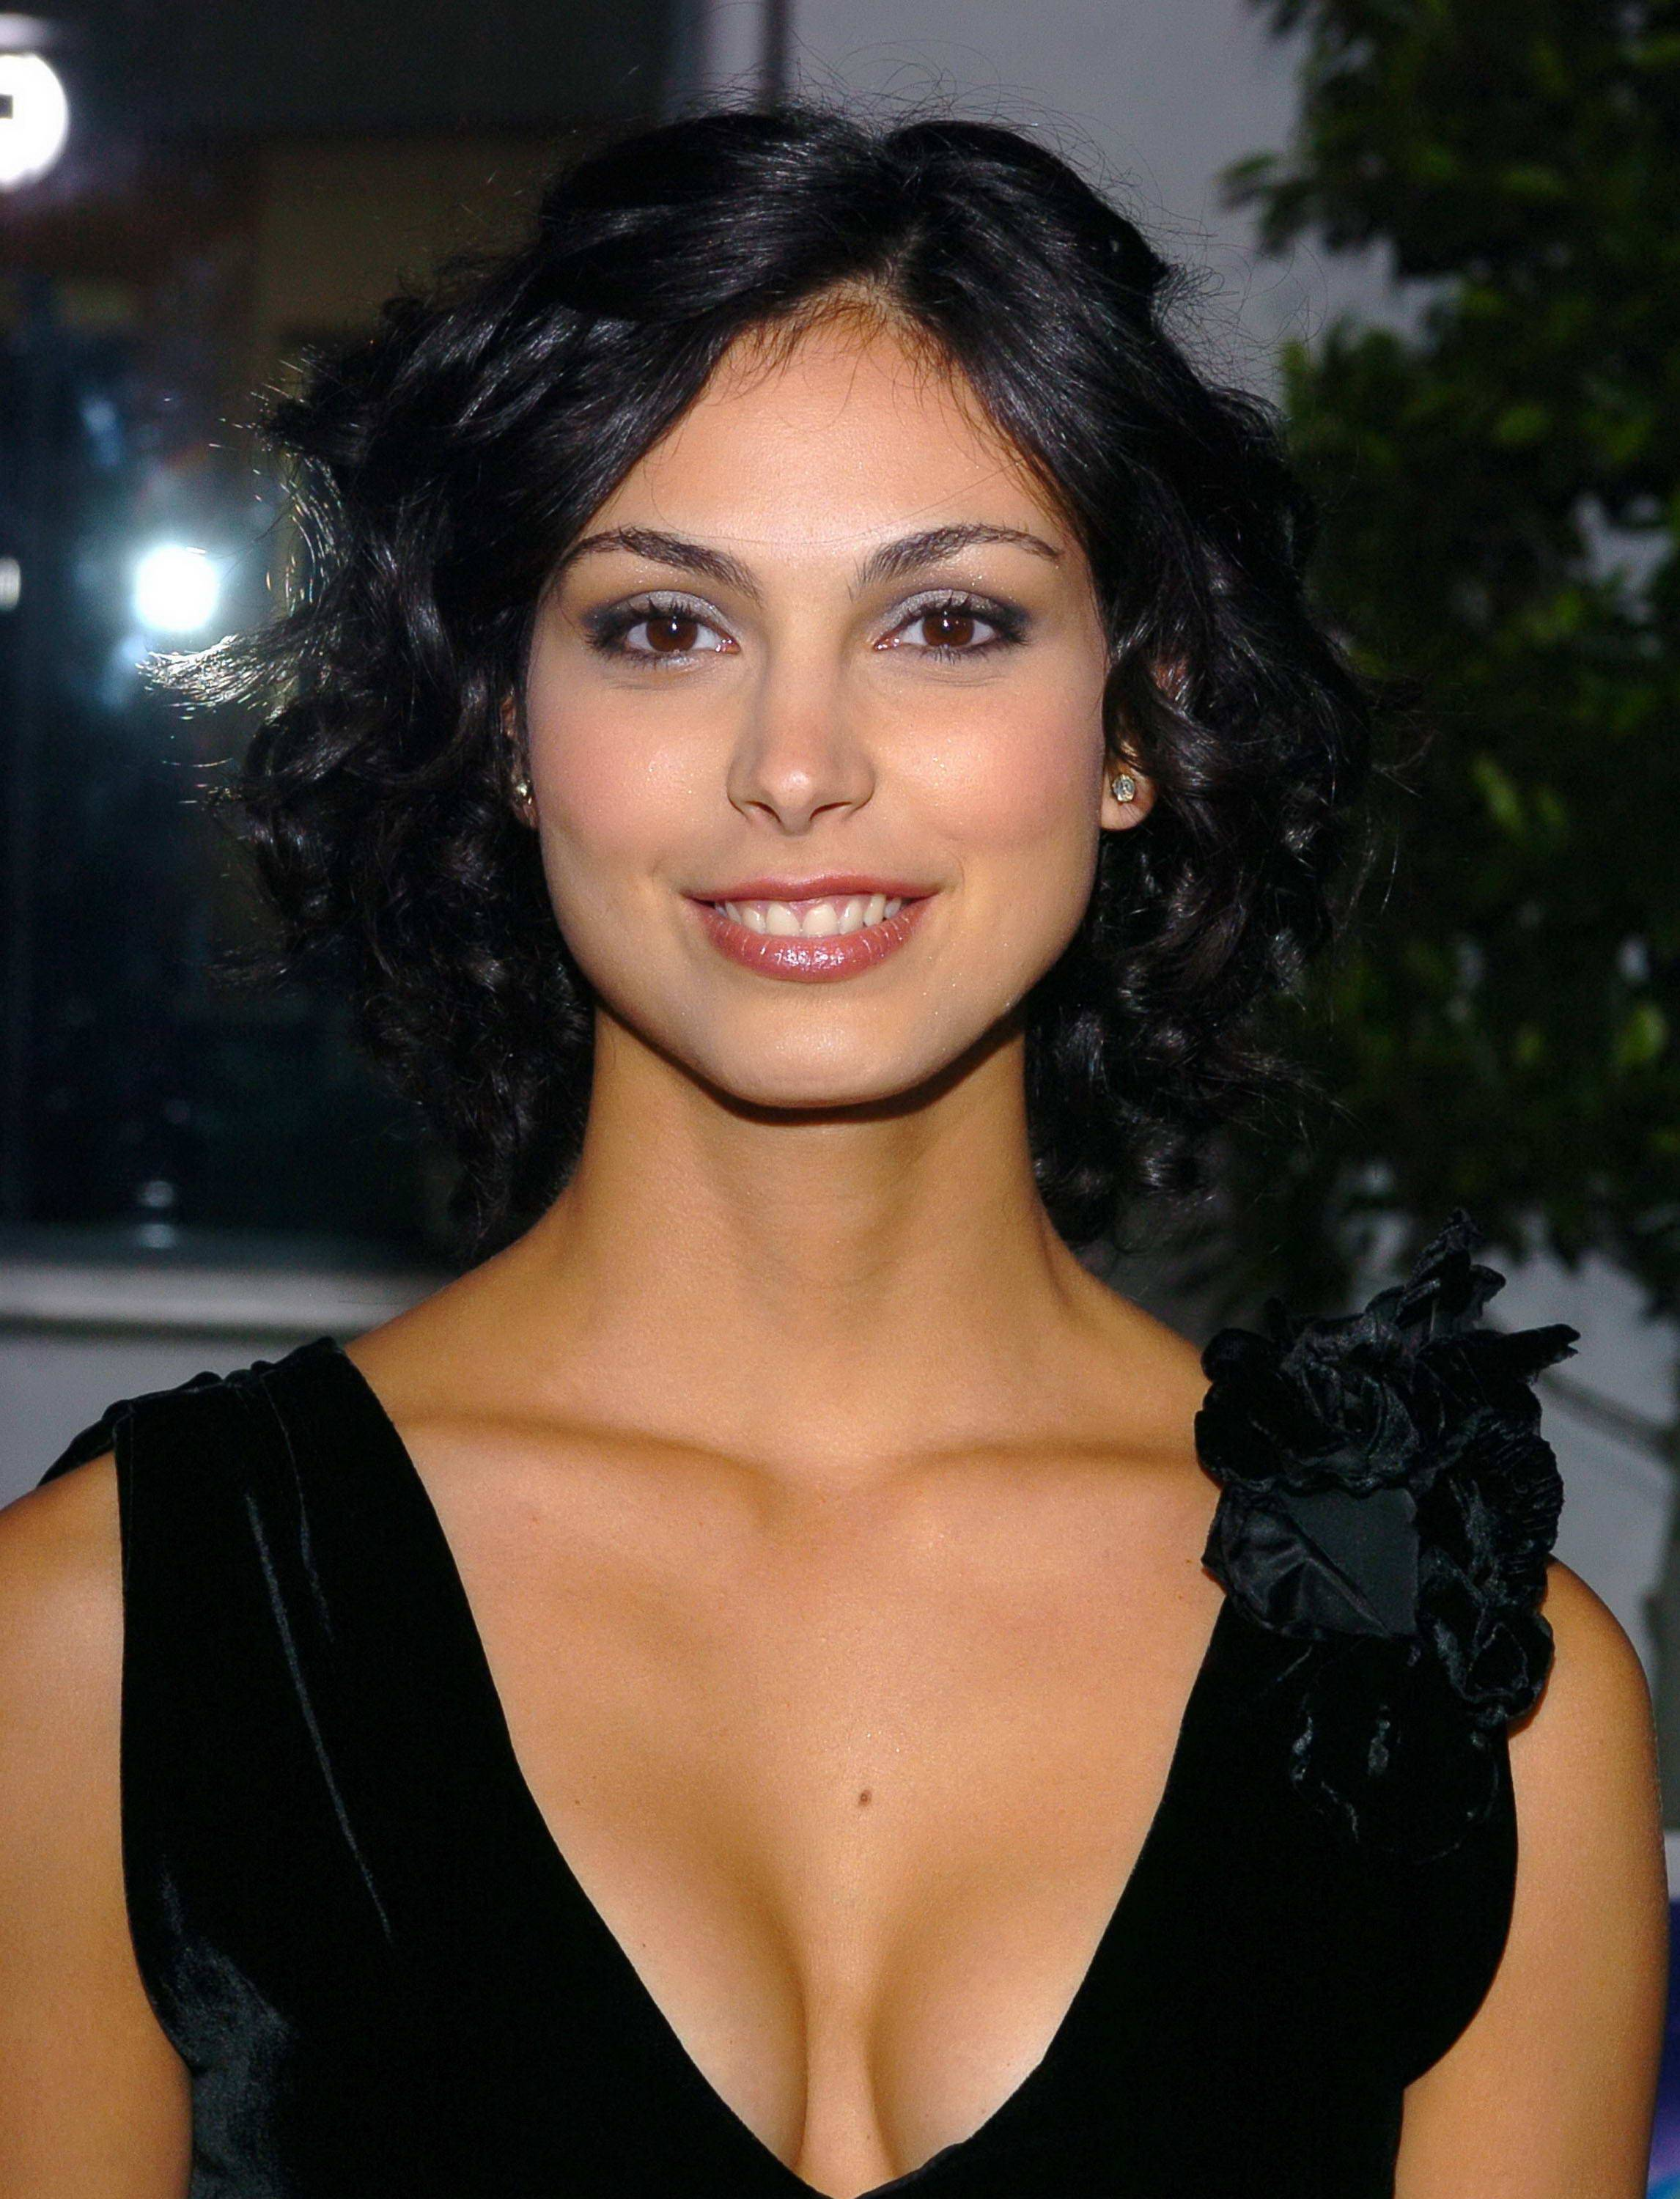 Paparazzi Is a cute Morena Baccarin naked photo 2017